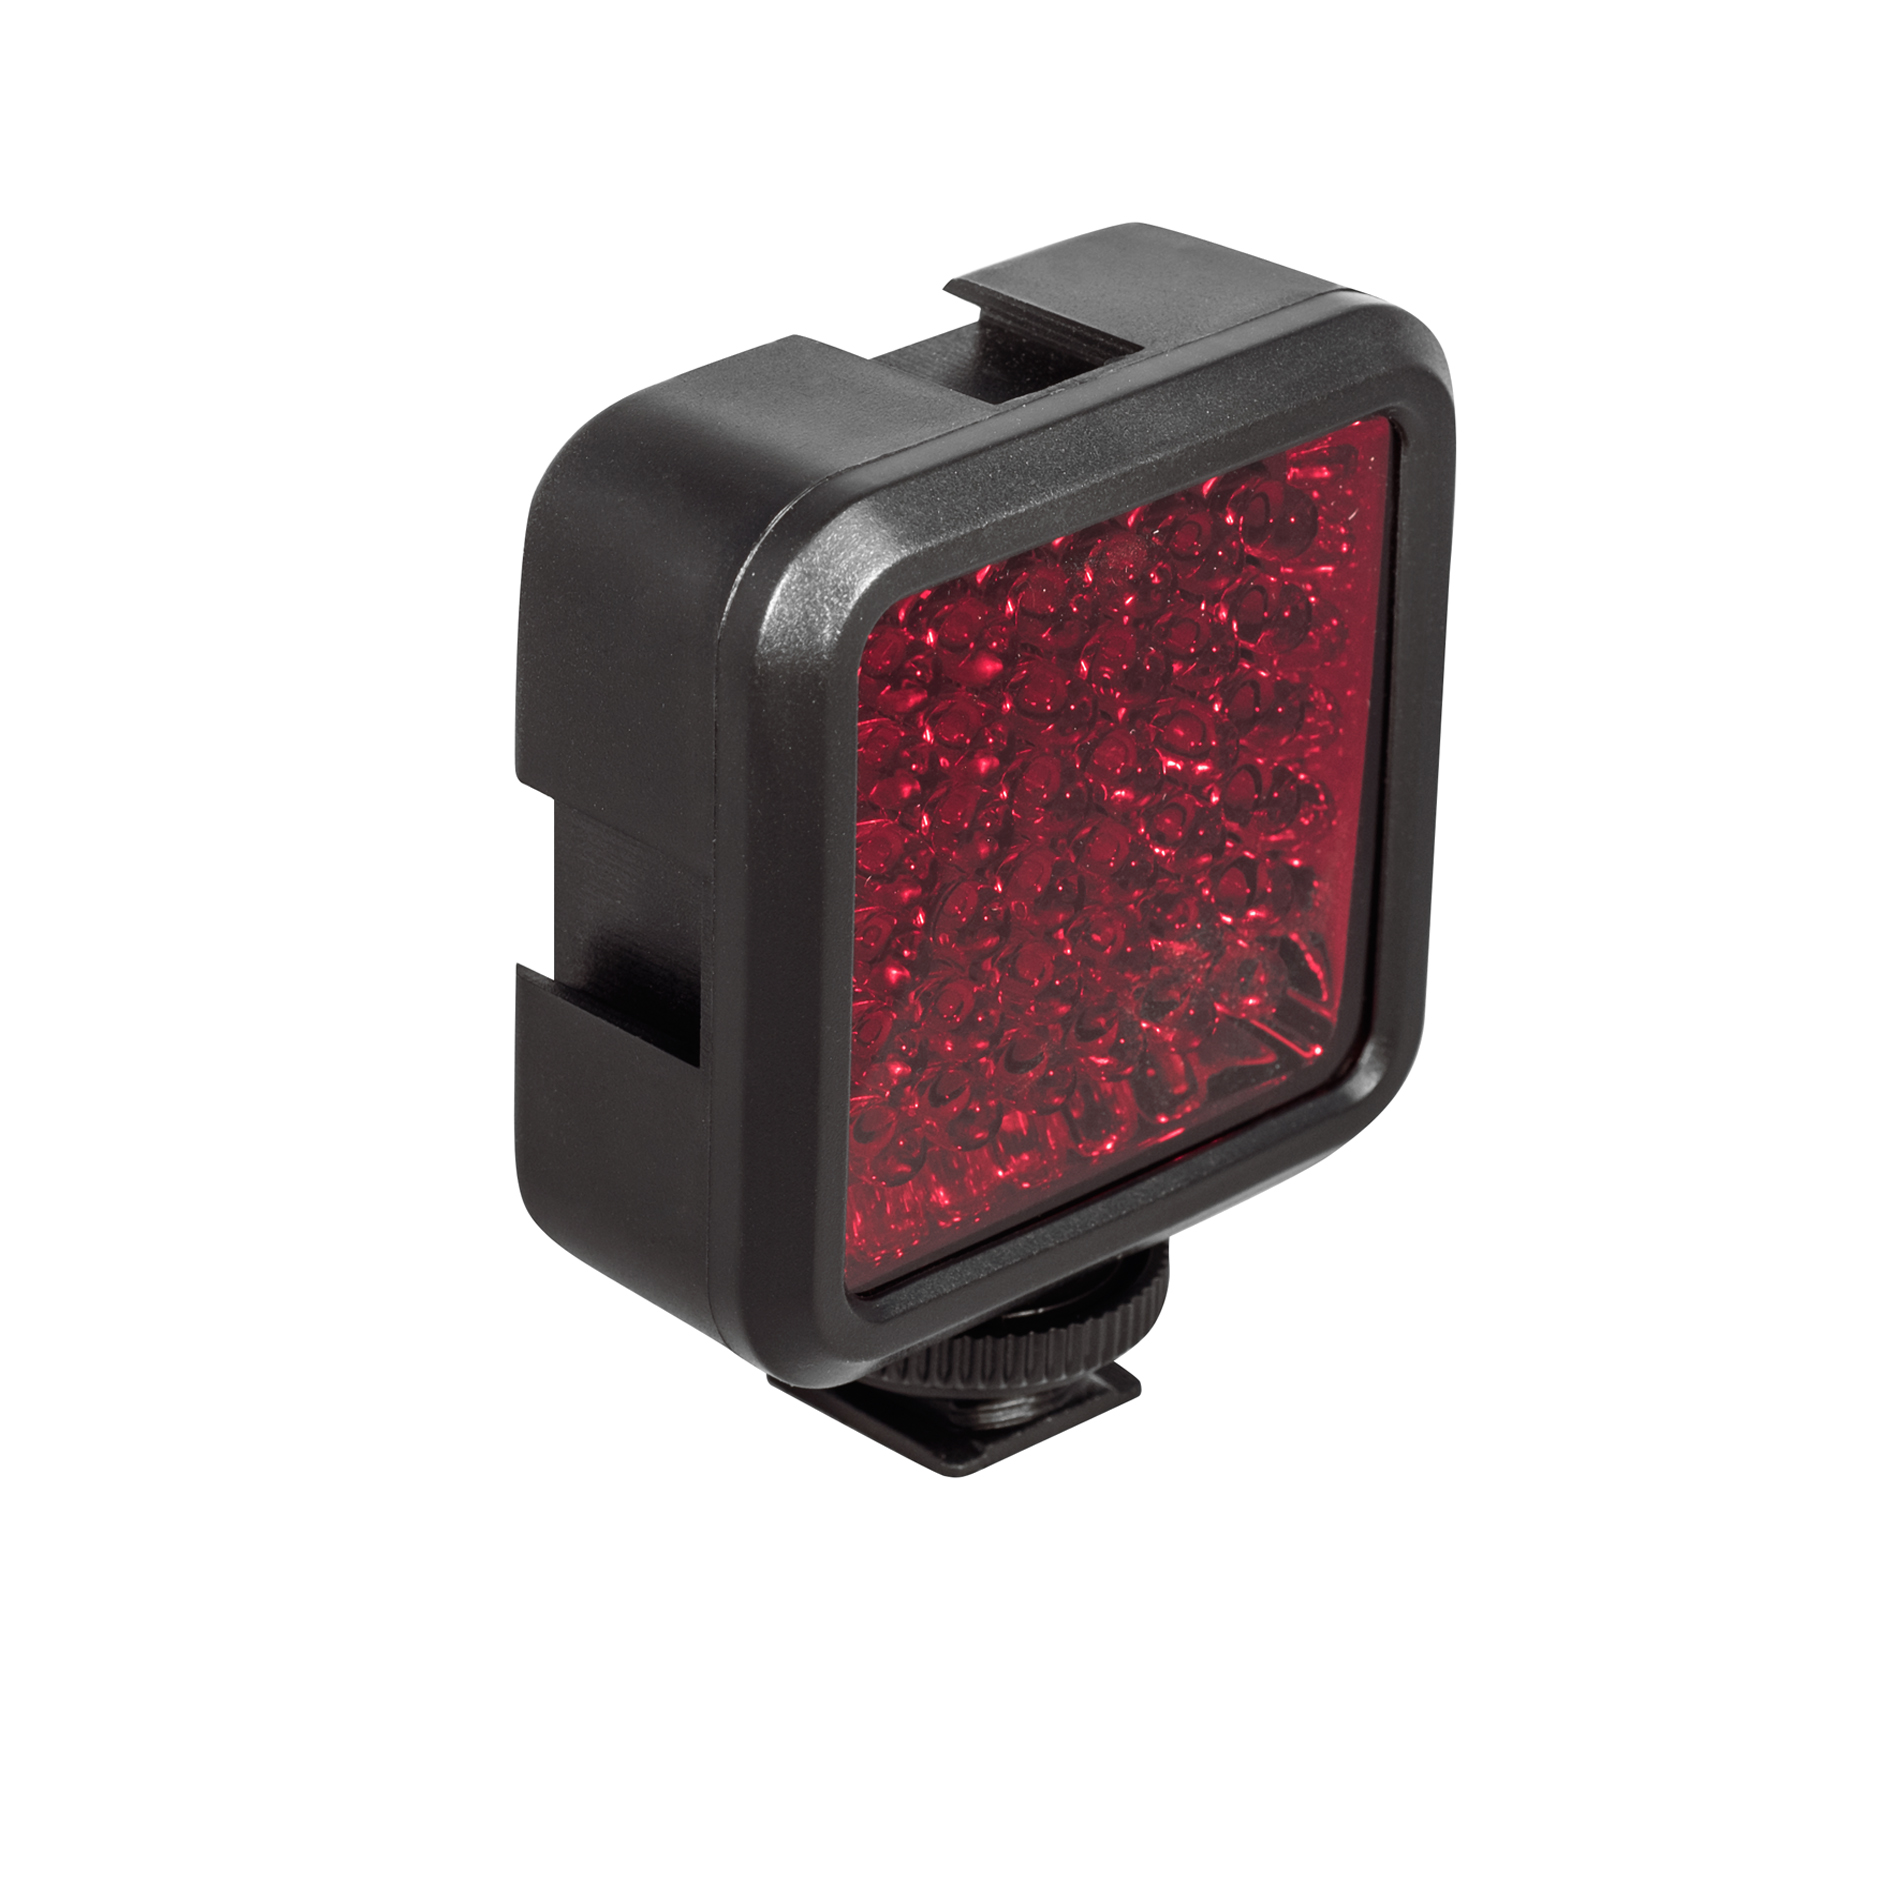 mini flood, infra-red LED, infra-red illuminator, IR LED, 850nm, 940nm, IR lamp, infra-red photography, covert surveillance, night vision